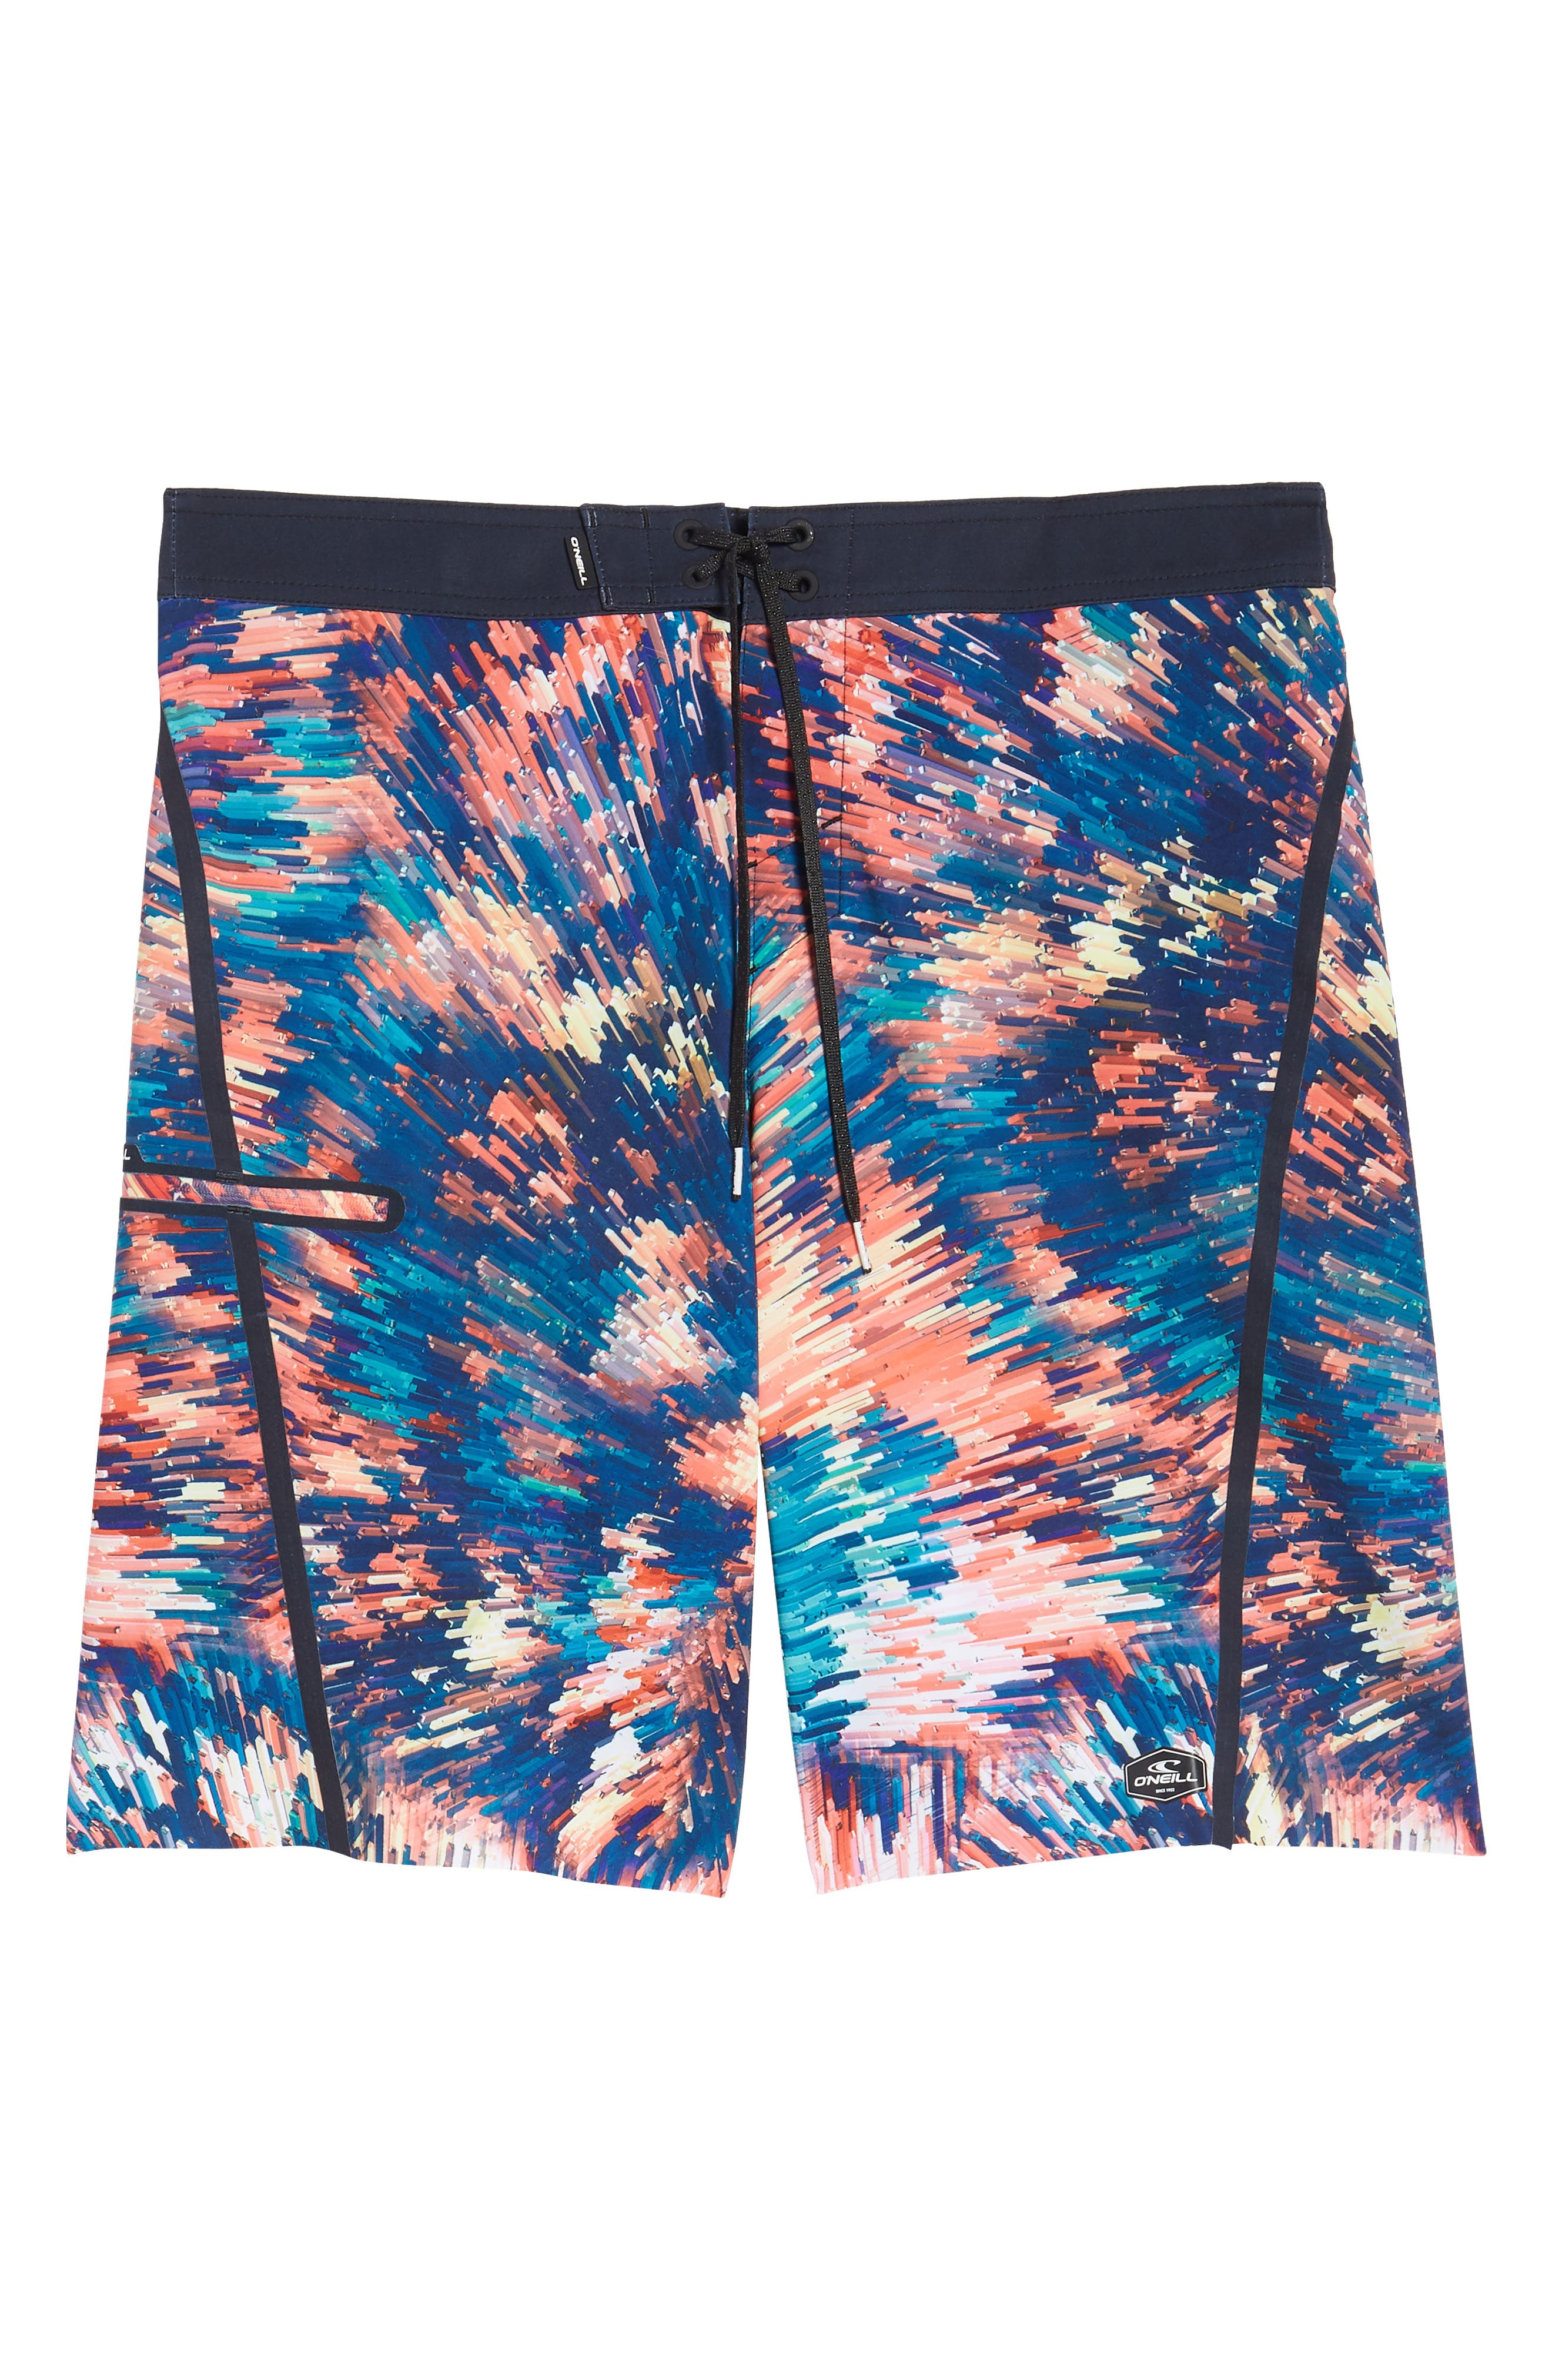 Hyperfreak Crystalize Board Shorts,                             Alternate thumbnail 4, color,                             Multi